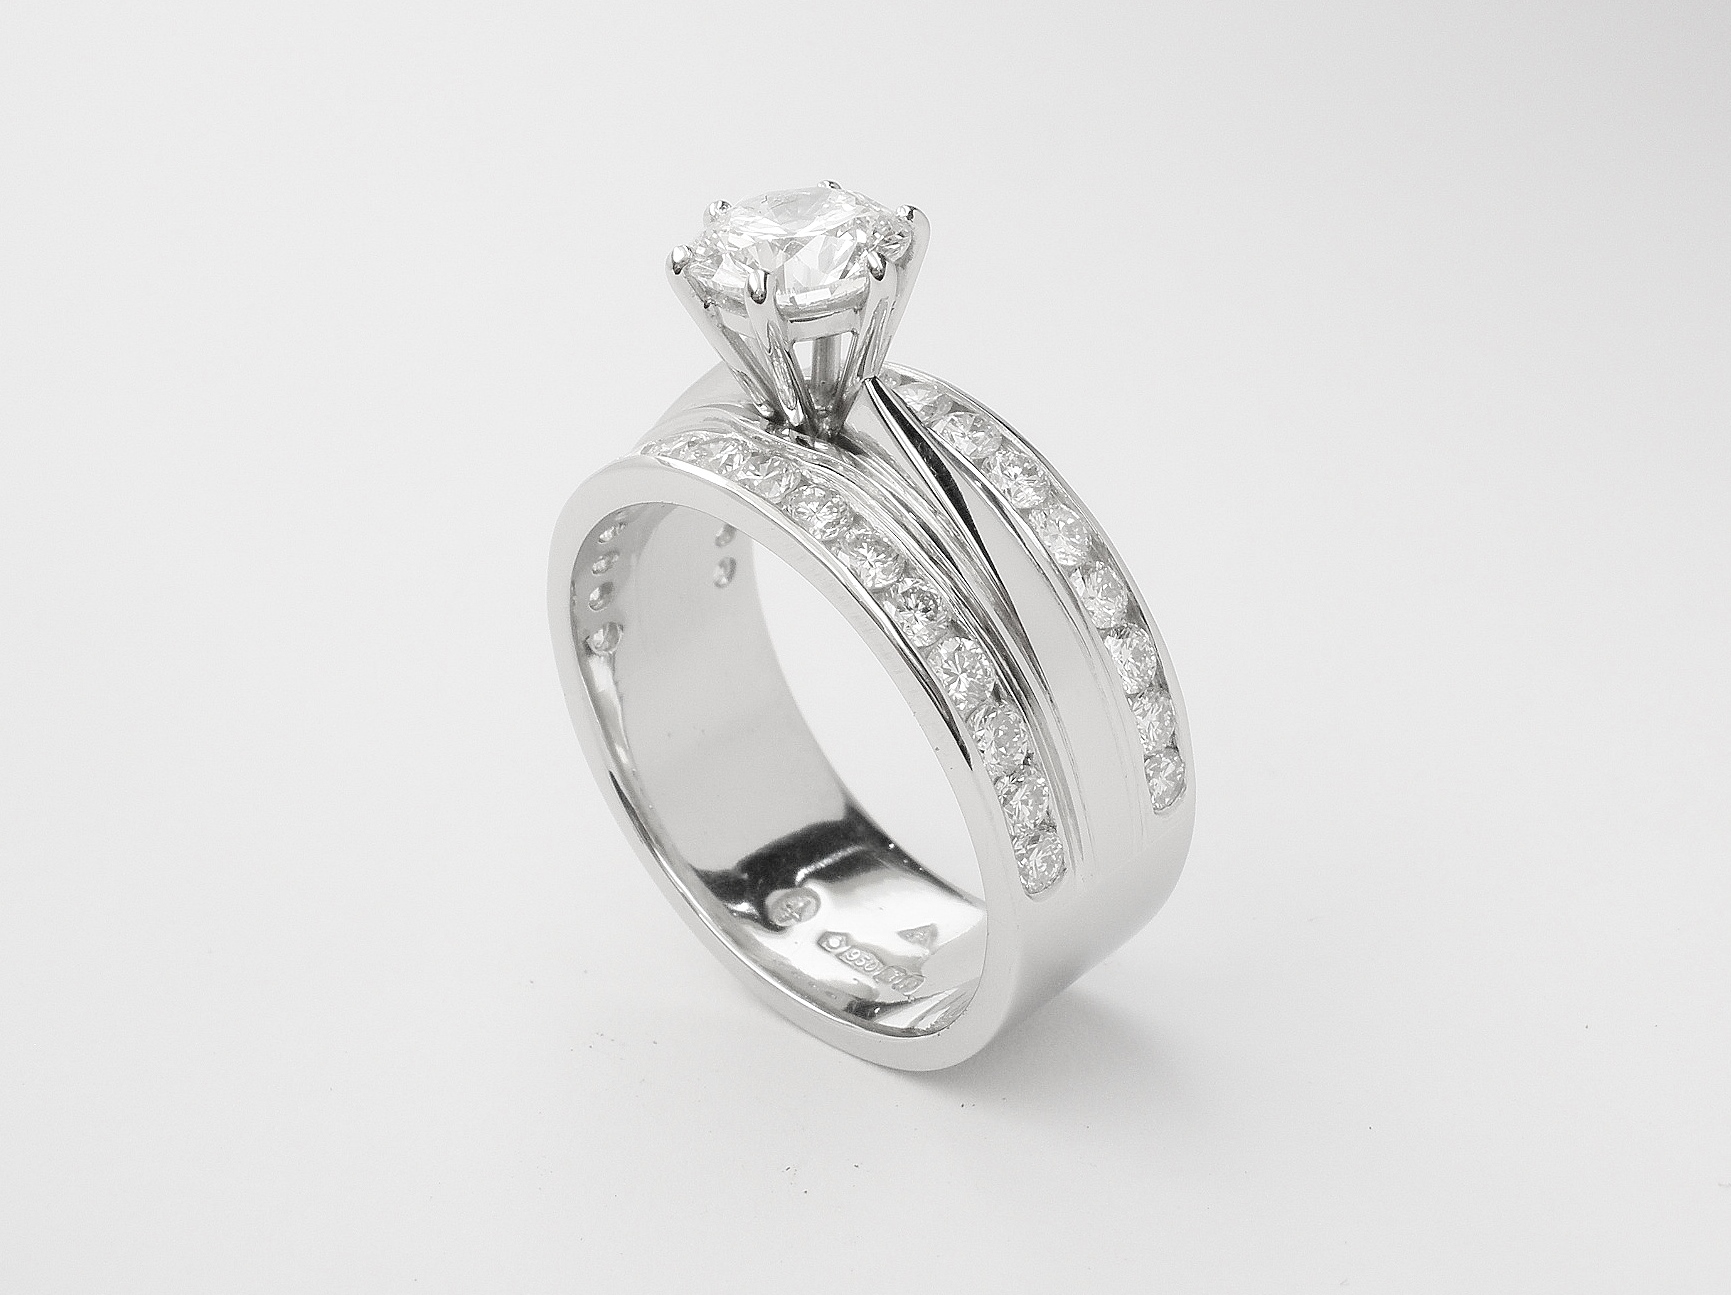 A round brilliant cut 0.91ct. 'F' colour diamond mounted in a broad platinum one piece engagement and wedding ring with round brilliants channel set across the top edges.